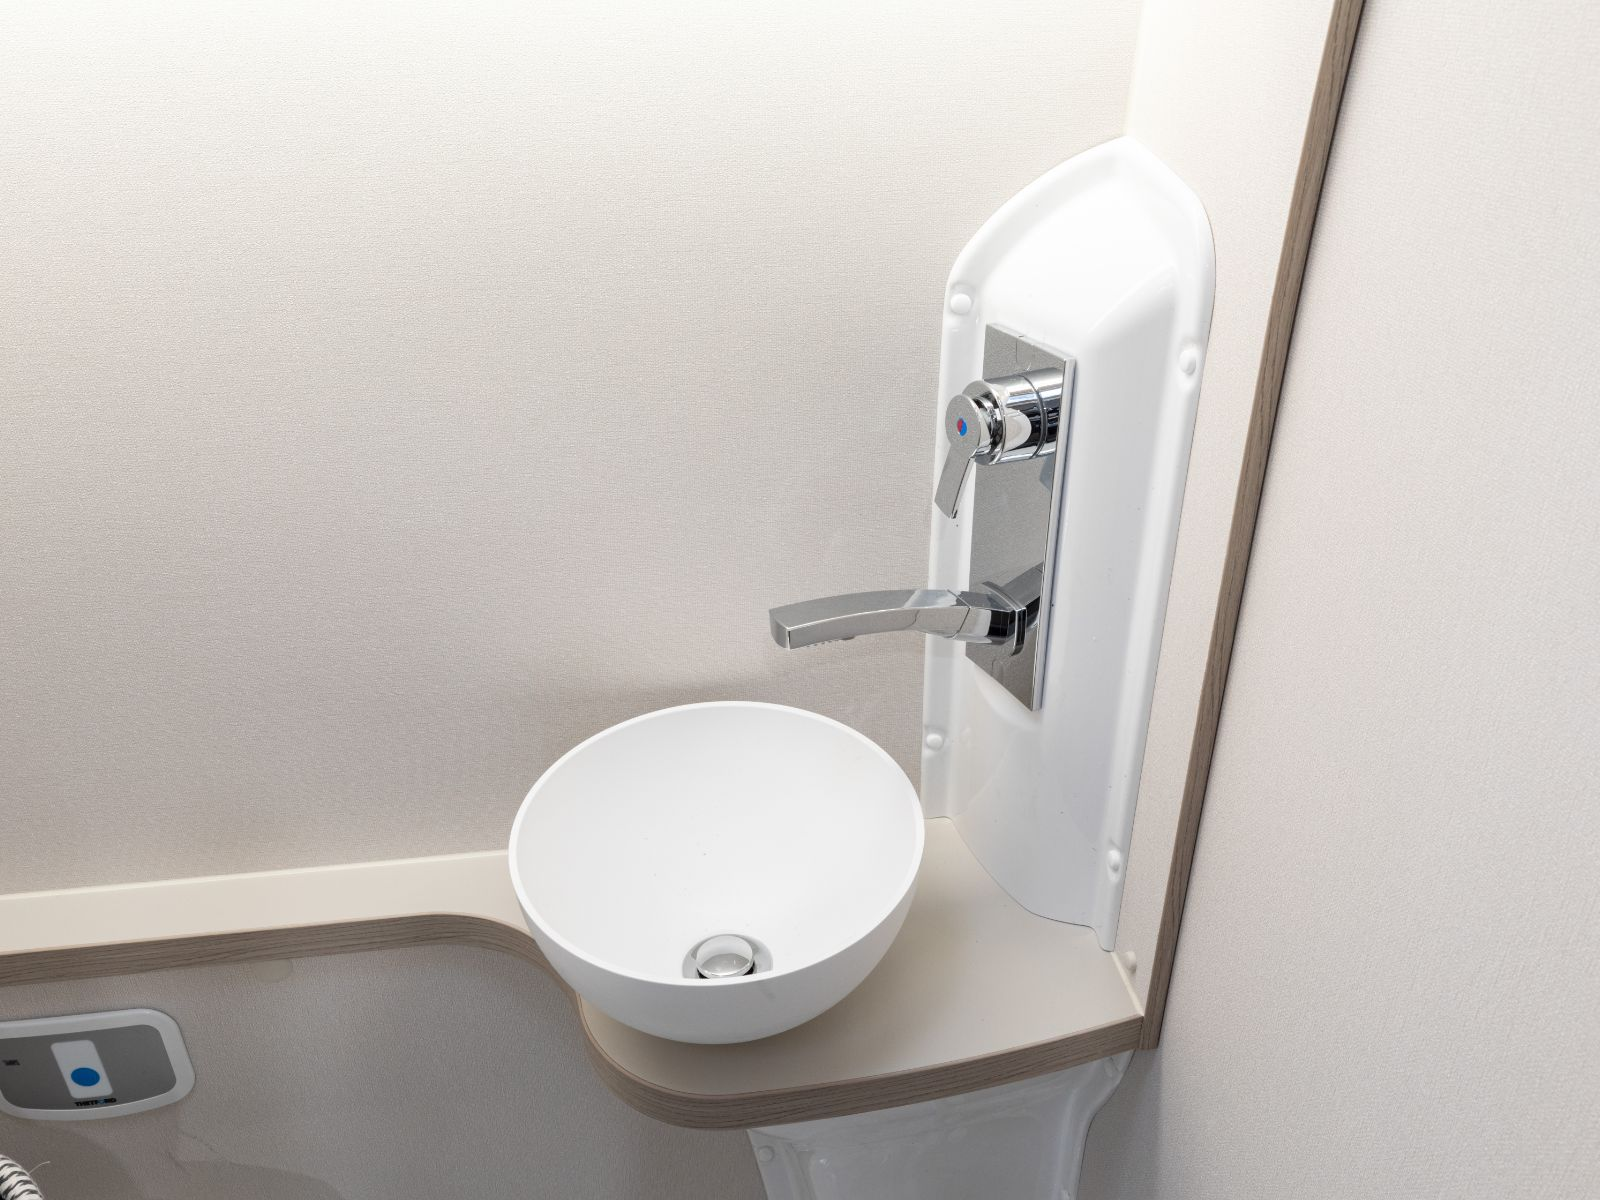 Bathroom sink and shower controls '